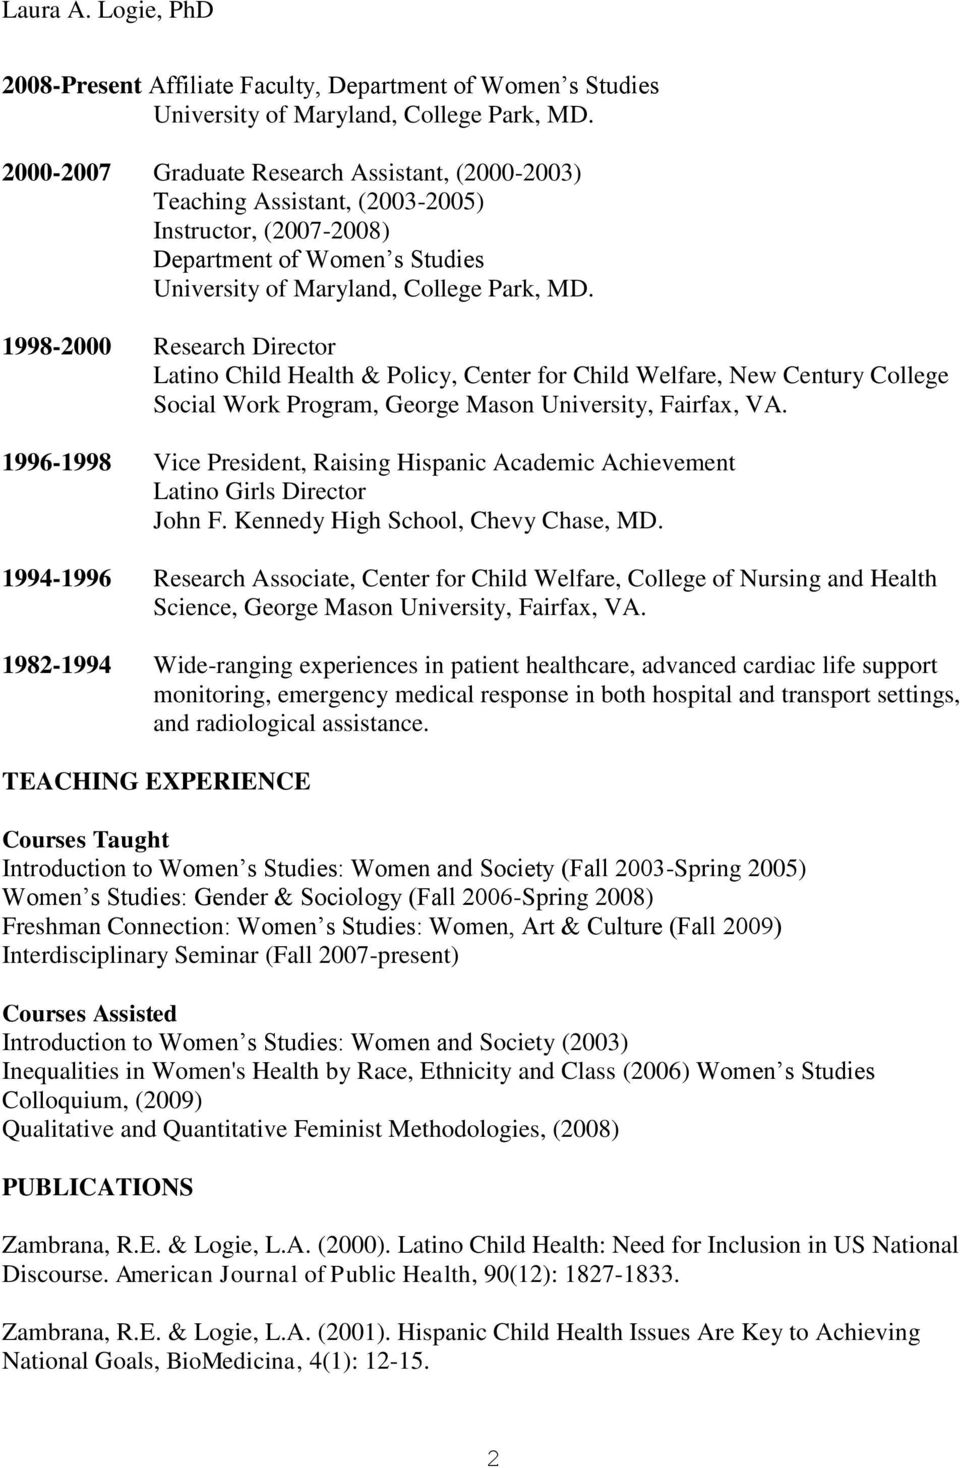 1998-2000 Research Director Latino Child Health & Policy, Center for Child Welfare, New Century College Social Work Program, George Mason University, Fairfax, VA.